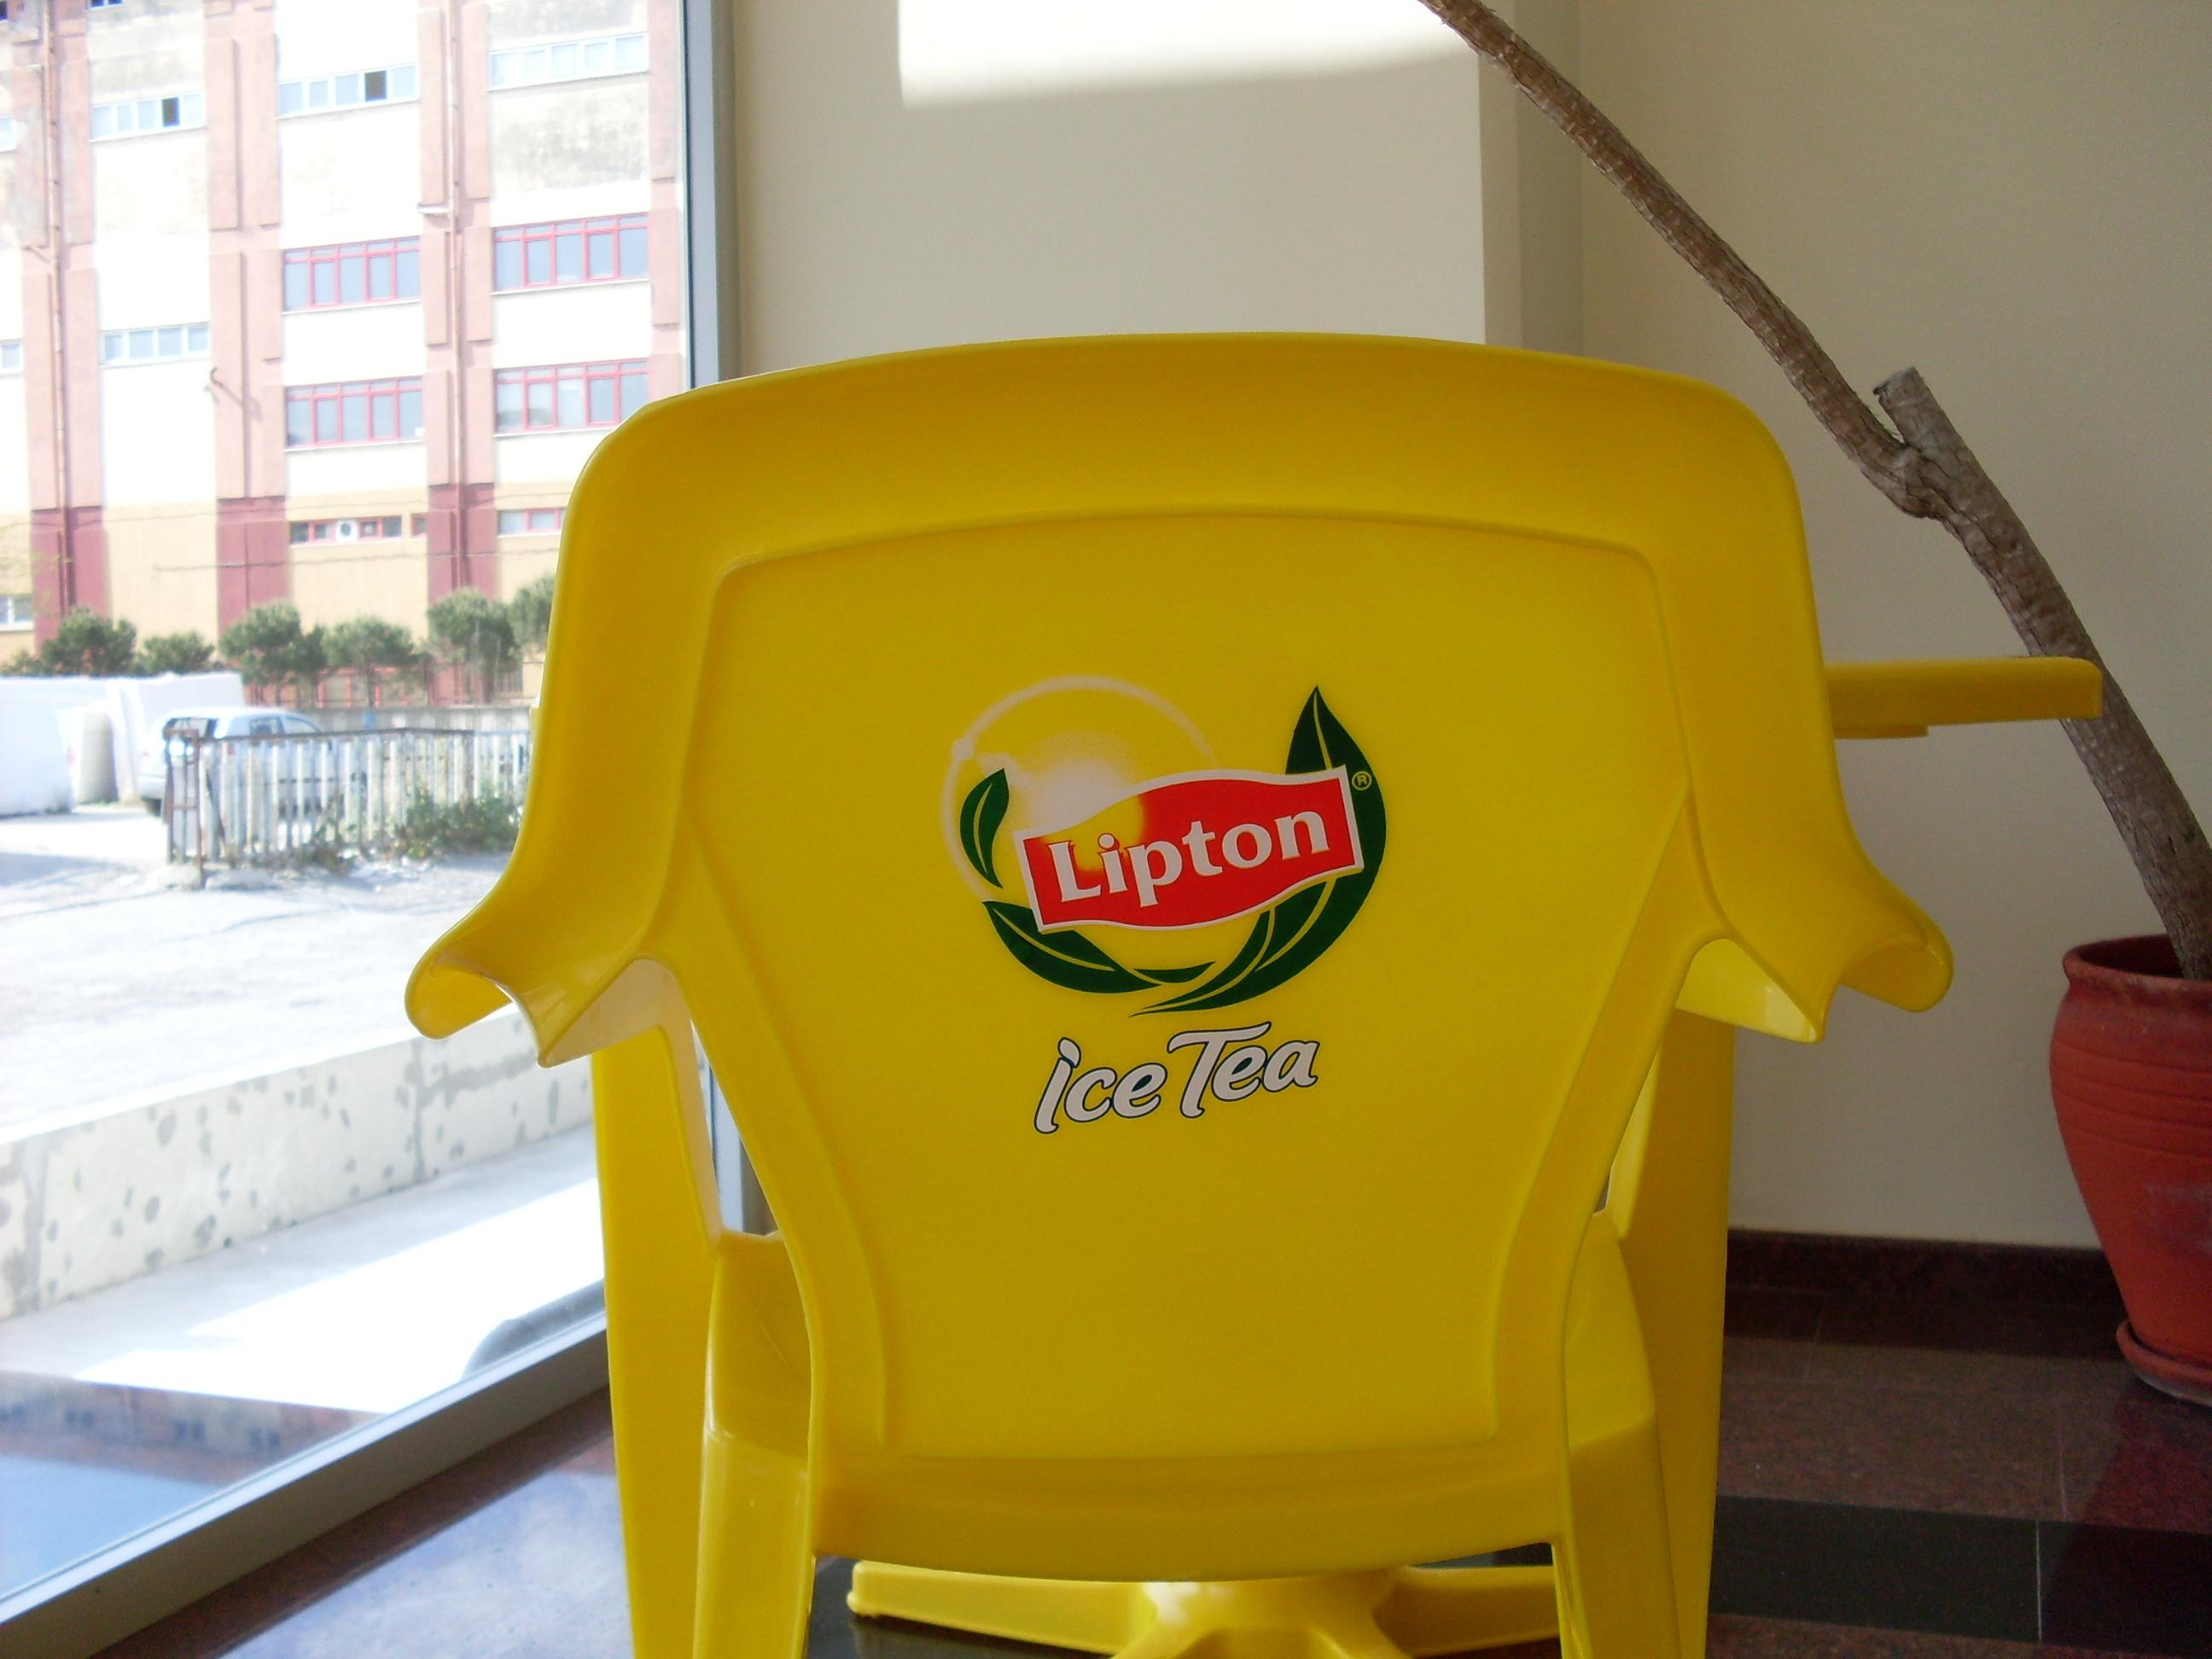 lipton marketing project A marketing plan for lipton ice tea institutional affiliation date lipton ice tea marketing plan: industry analysis in 2005, the tea industry reached the $17 billion category and it is expected to continue growing indefinitely (mintel 2005) market analysts believe the tea industry will continue to boom and is not expected to reach saturation level in the near future.